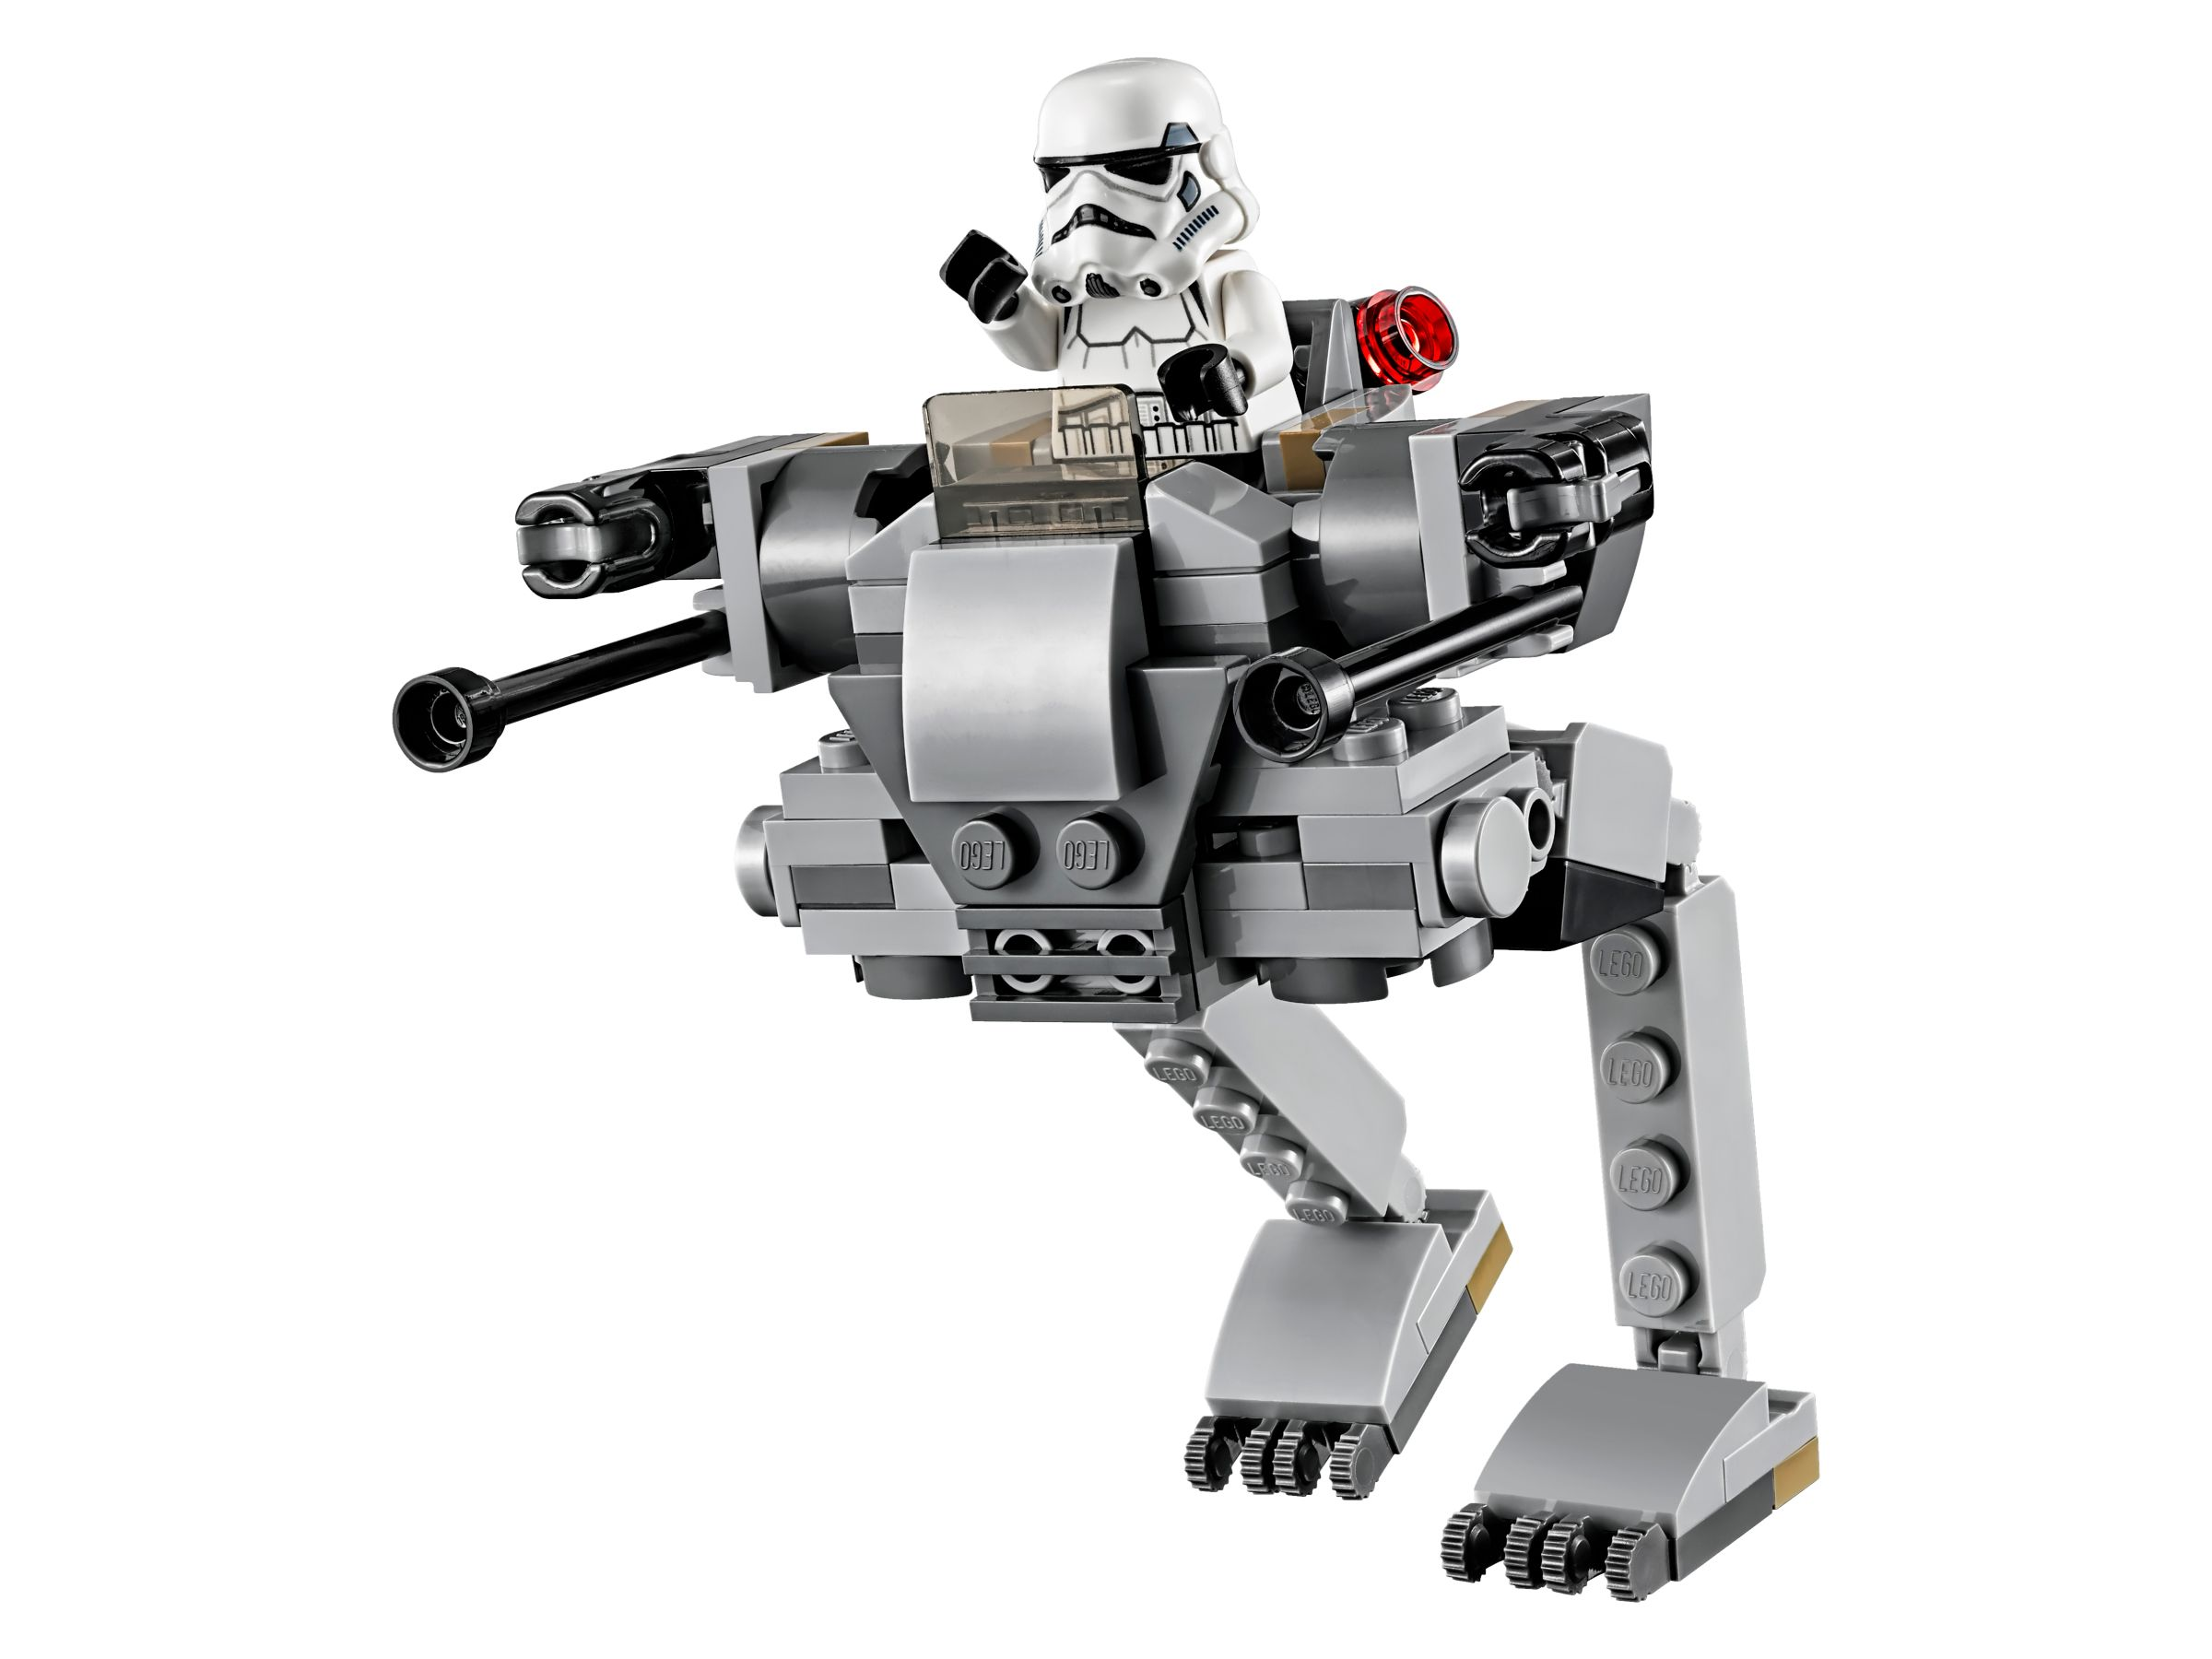 LEGO Star Wars 75165 Imperial Trooper Battle Pack LEGO_75165_alt2.jpg